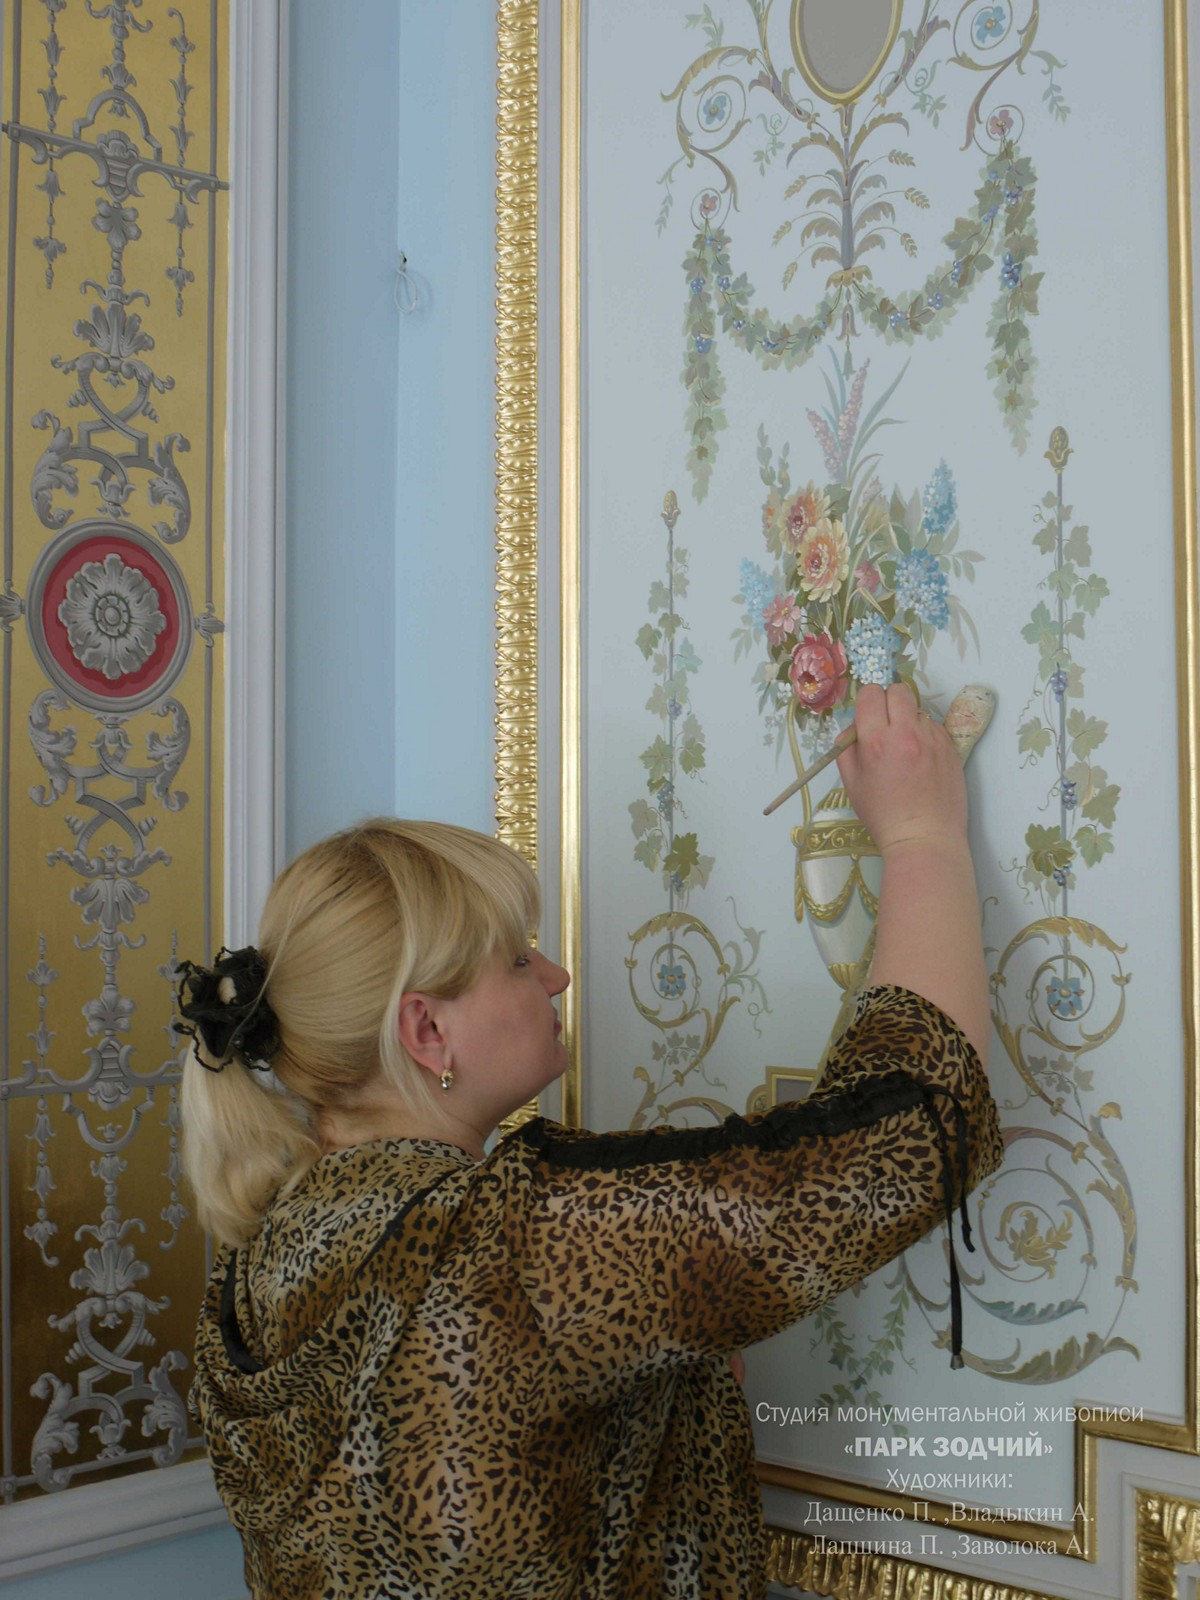 The artist executes the painting of the walls in polychrome